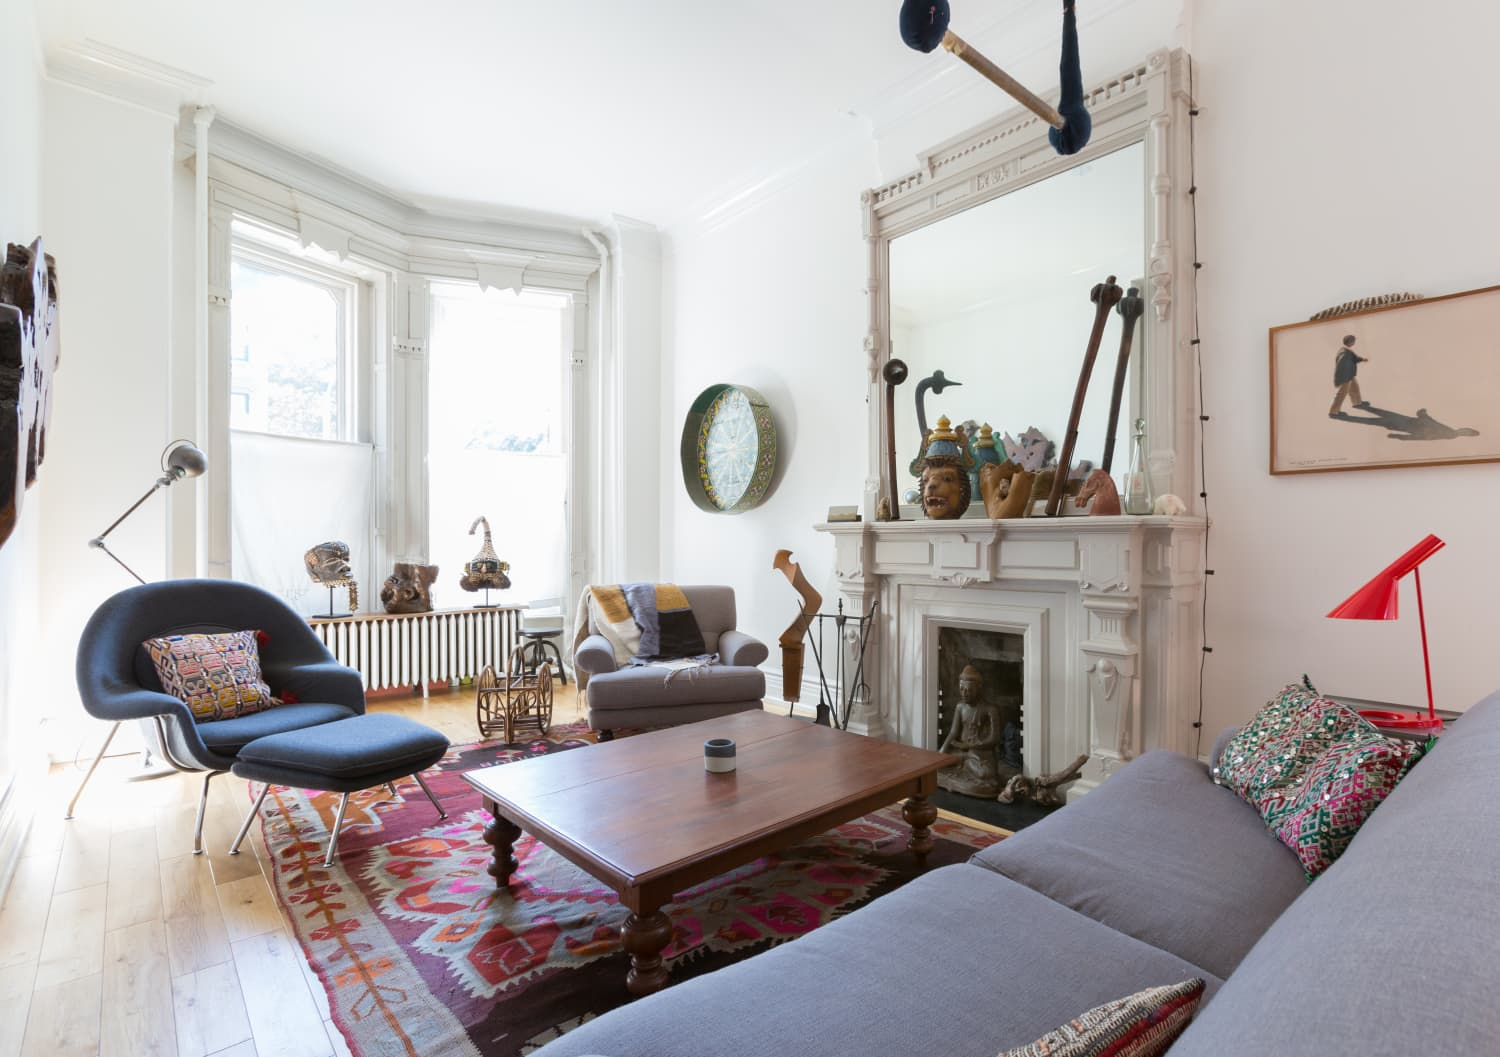 How to Decorate a Mismatched Room  Apartment Therapy